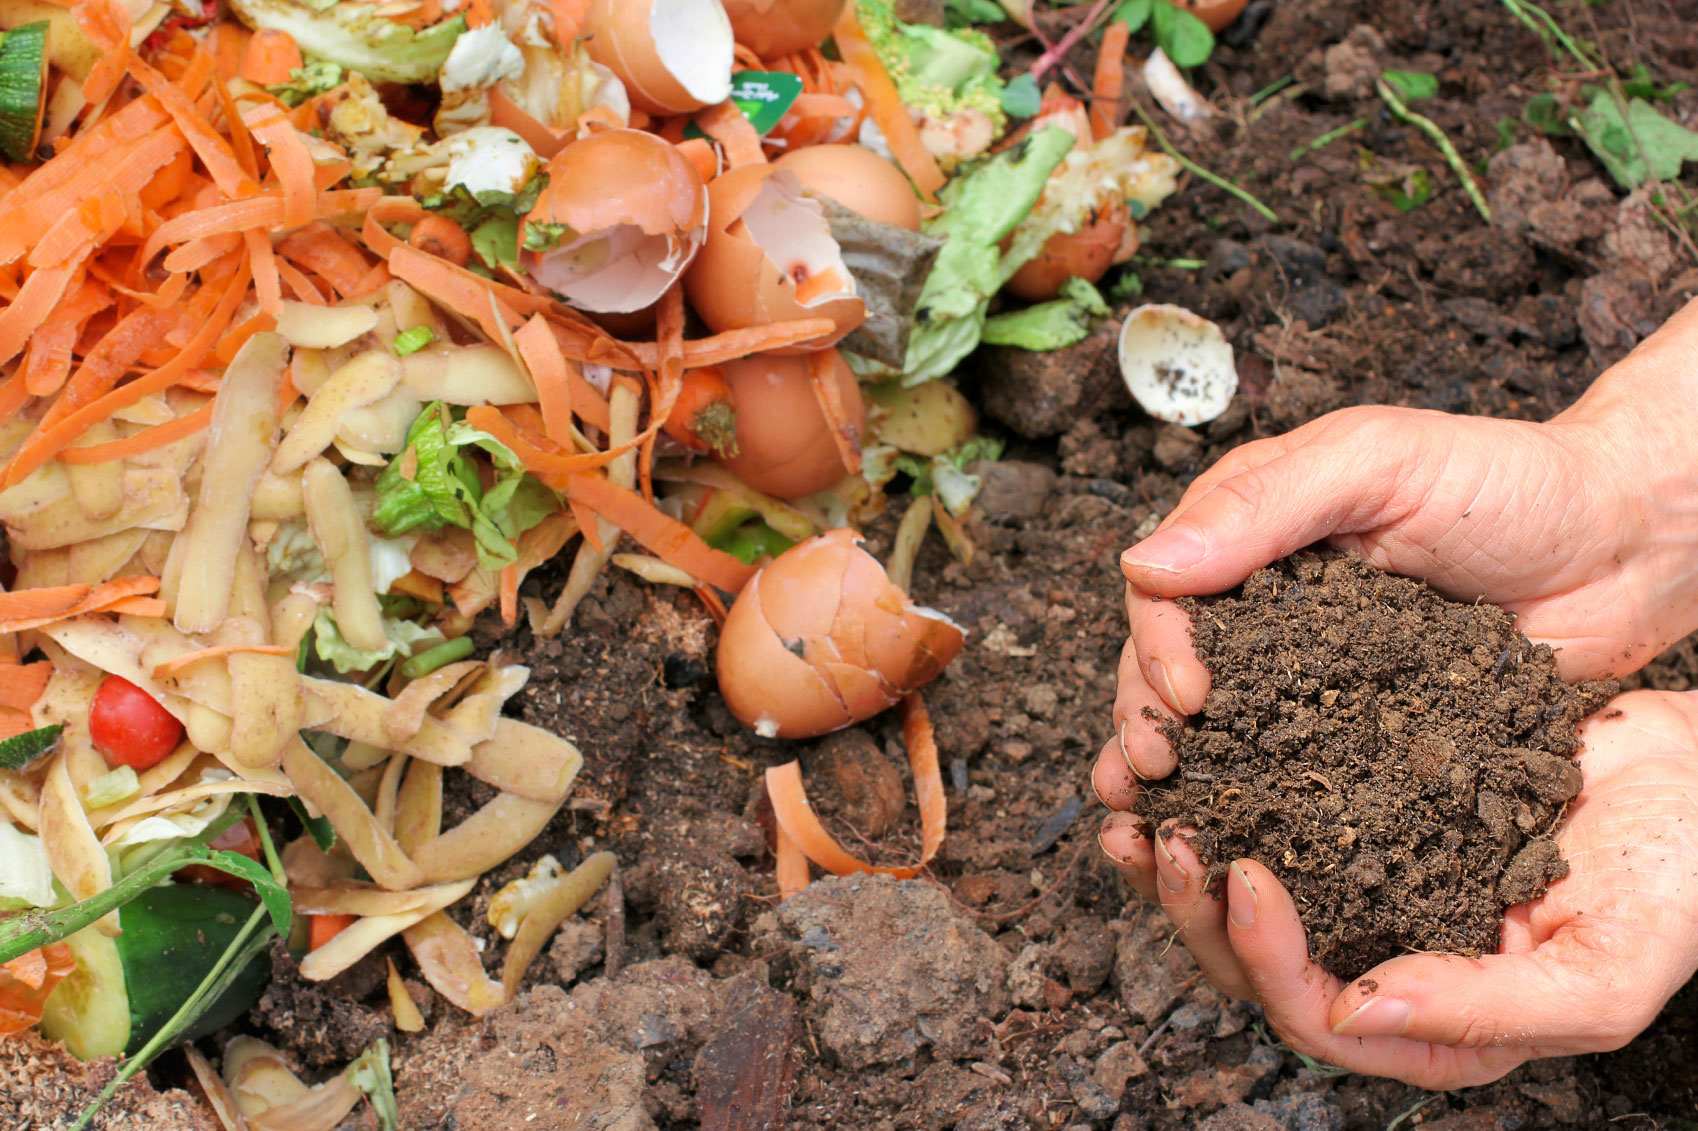 biodegradable items for composting